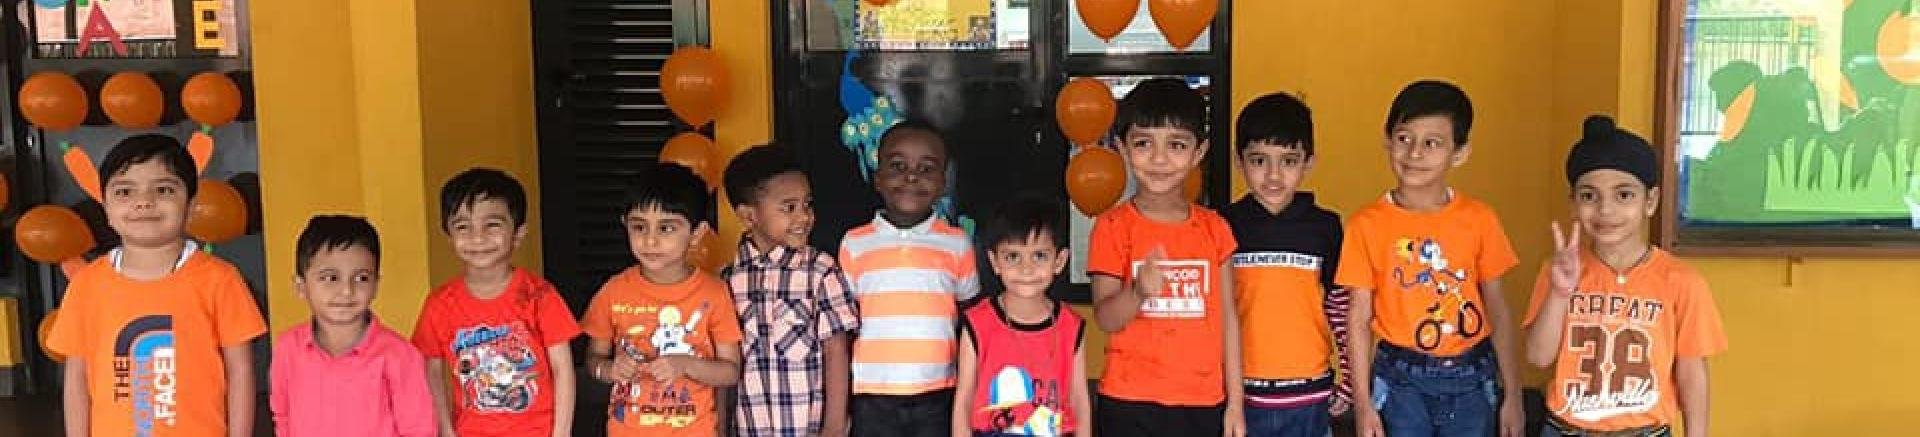 Dheli Public School International_Orange Day